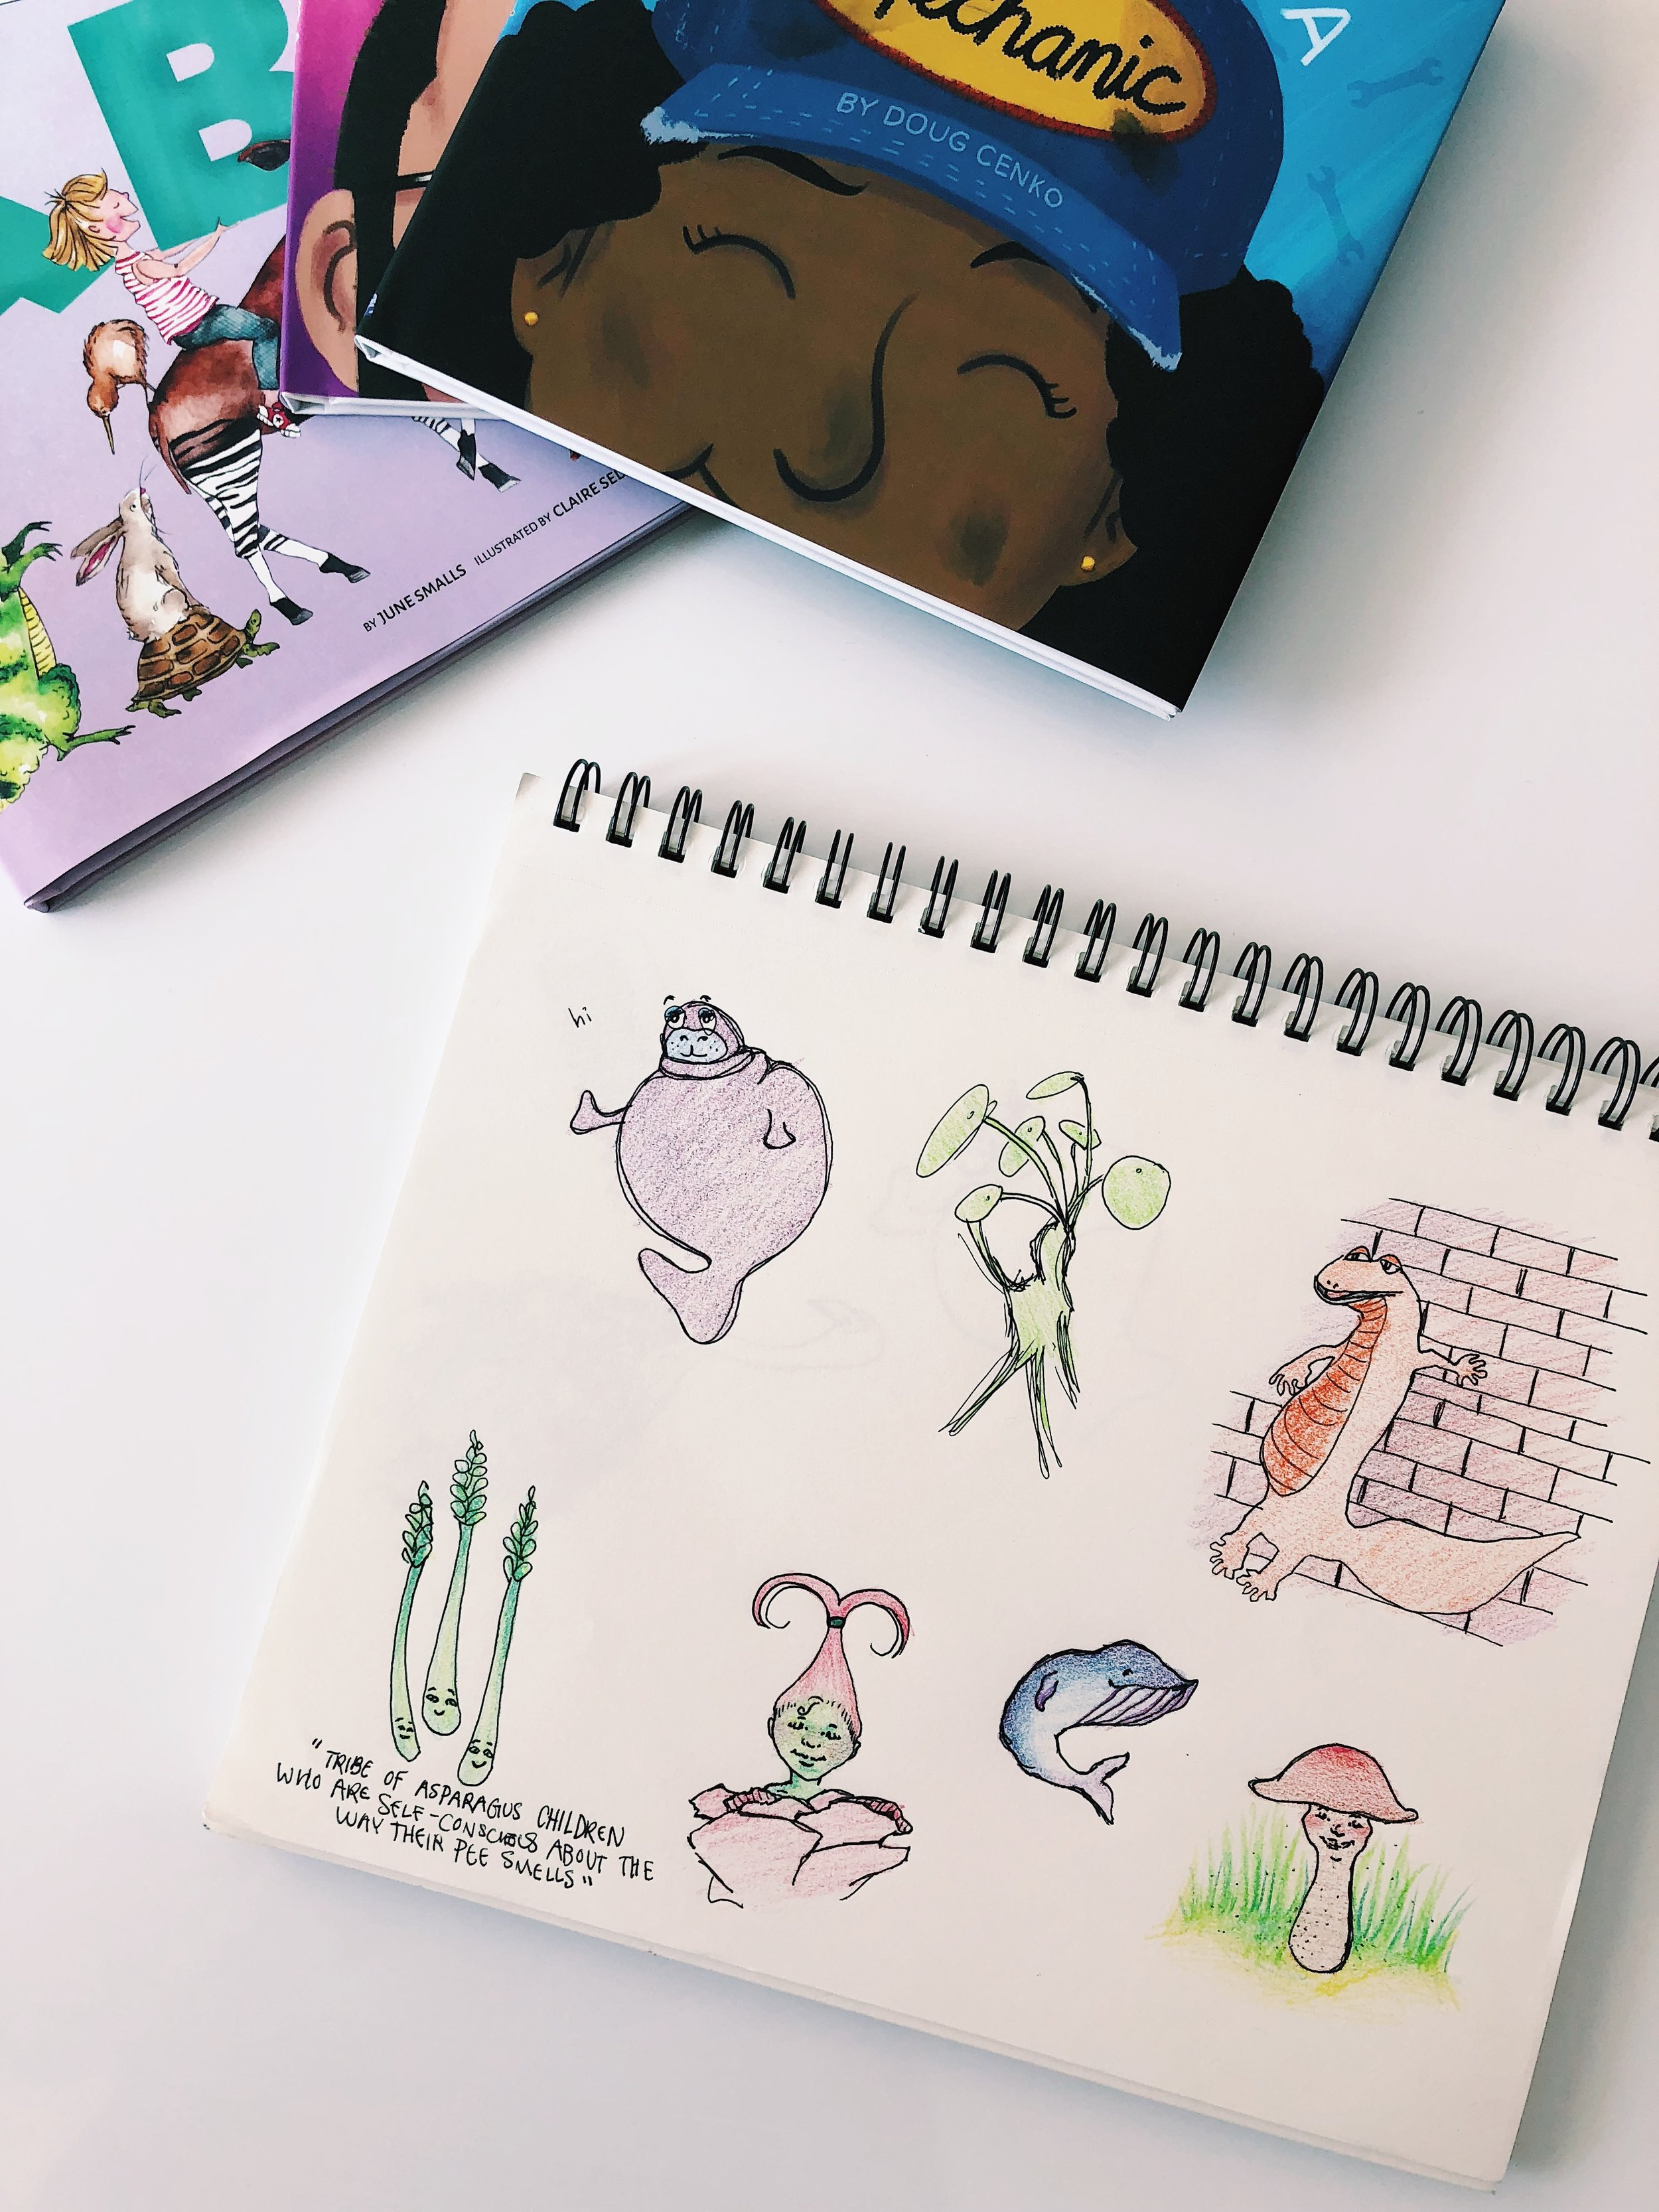 Inspired by our titles and the artwork in our picture books, Bailey sketched some new characters to keep practicing her illustration skills.